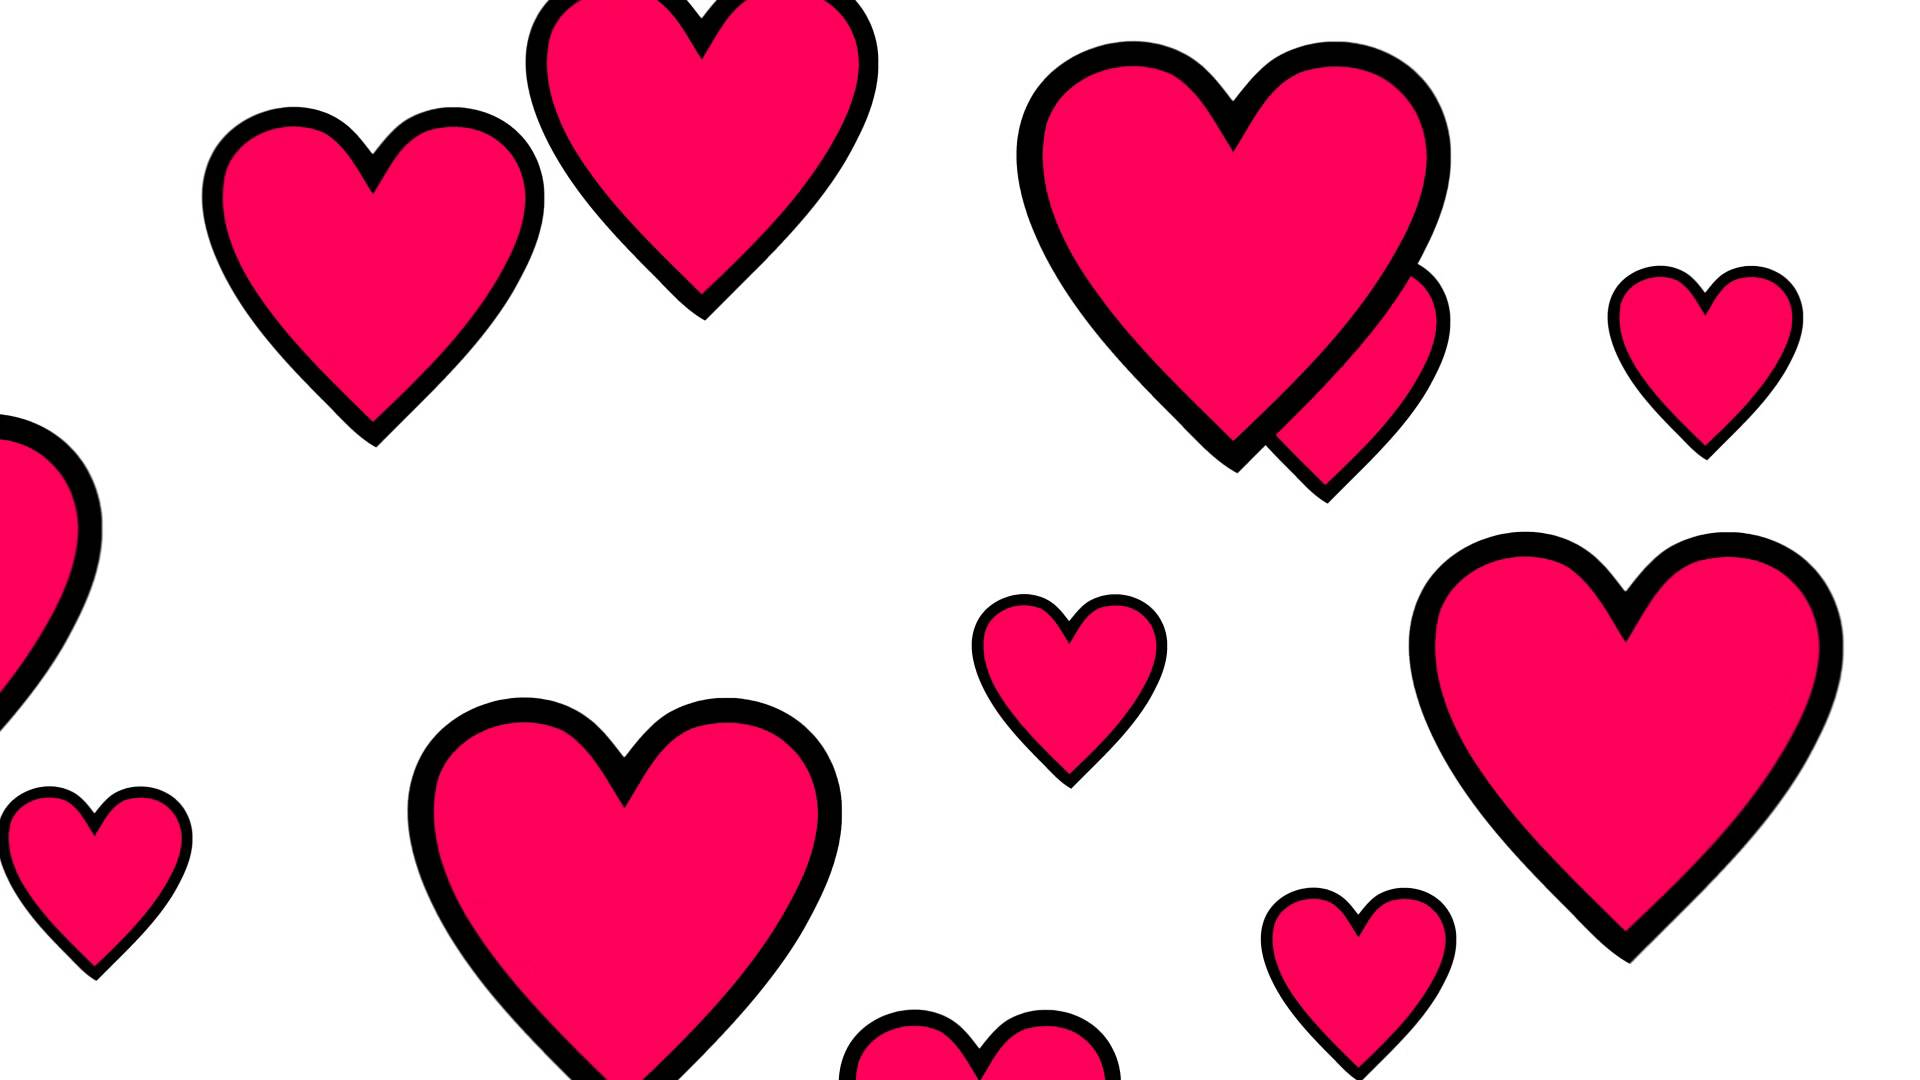 love hearts images free